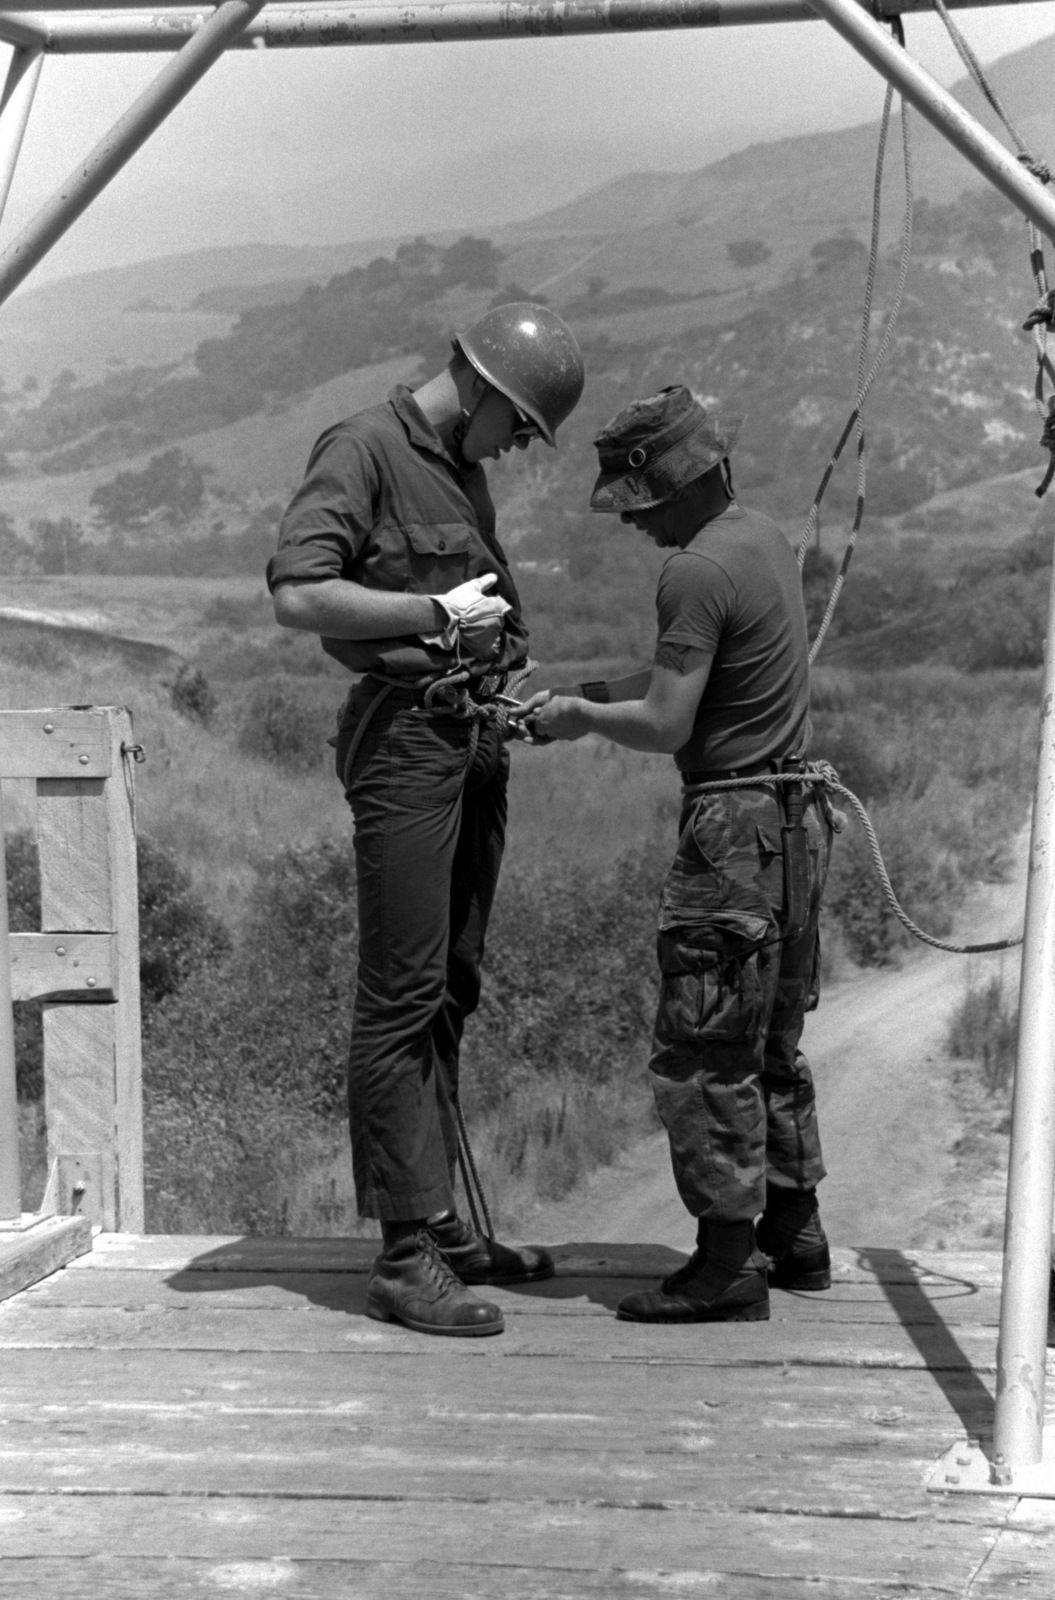 A midshipmen is instructed by a Marine instructor on how to put on a rope during rope rappelling class at the Infantry Training School. The midshipman is on his collge spring break and is touring Camp Pendleton with other many other midshipmen